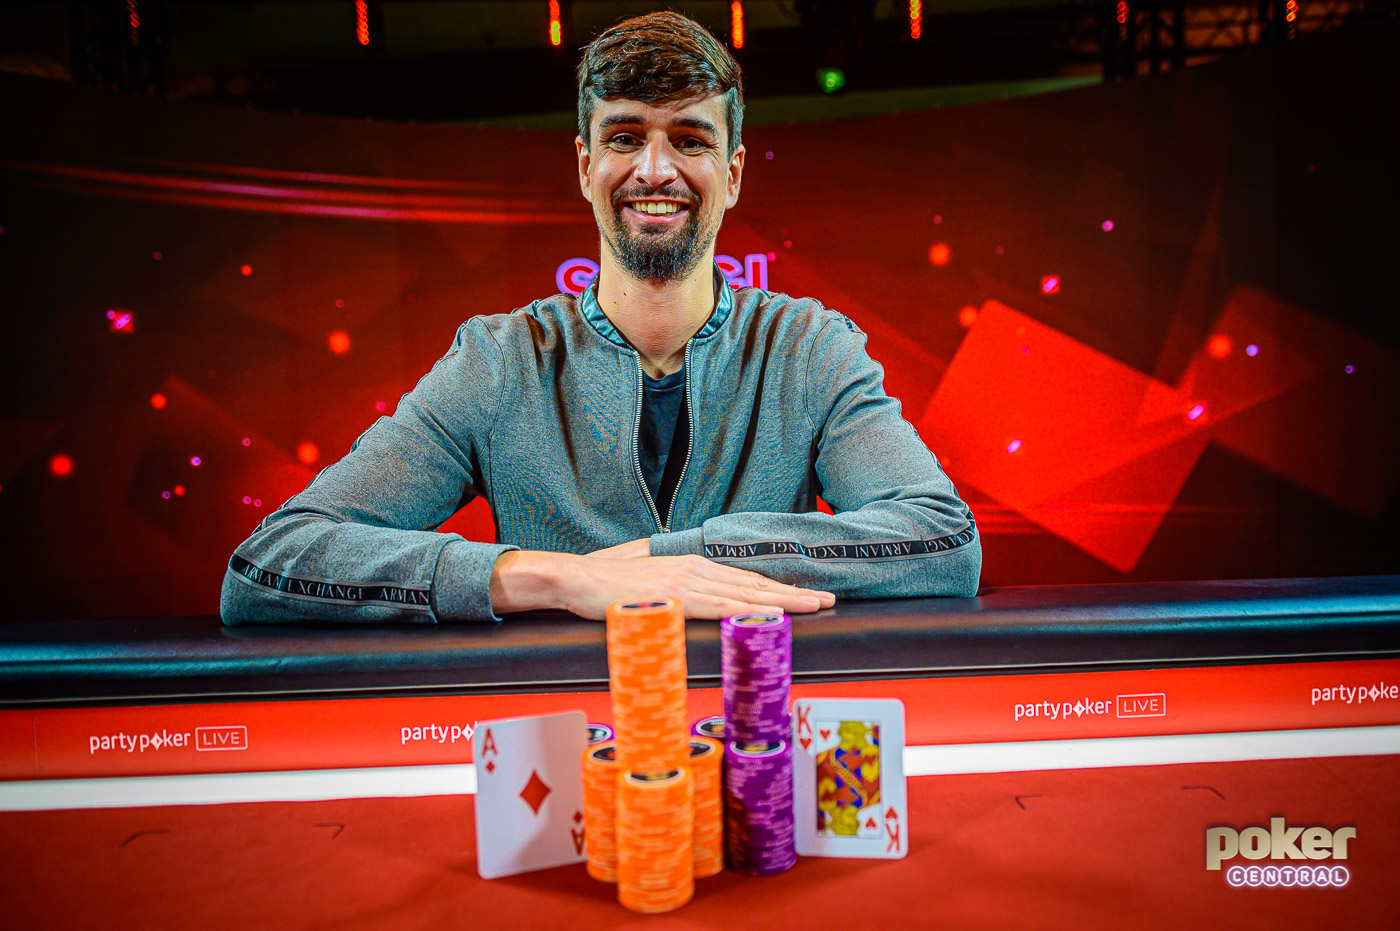 Sergi Reixach claims the British Poker Open Event #6 title.